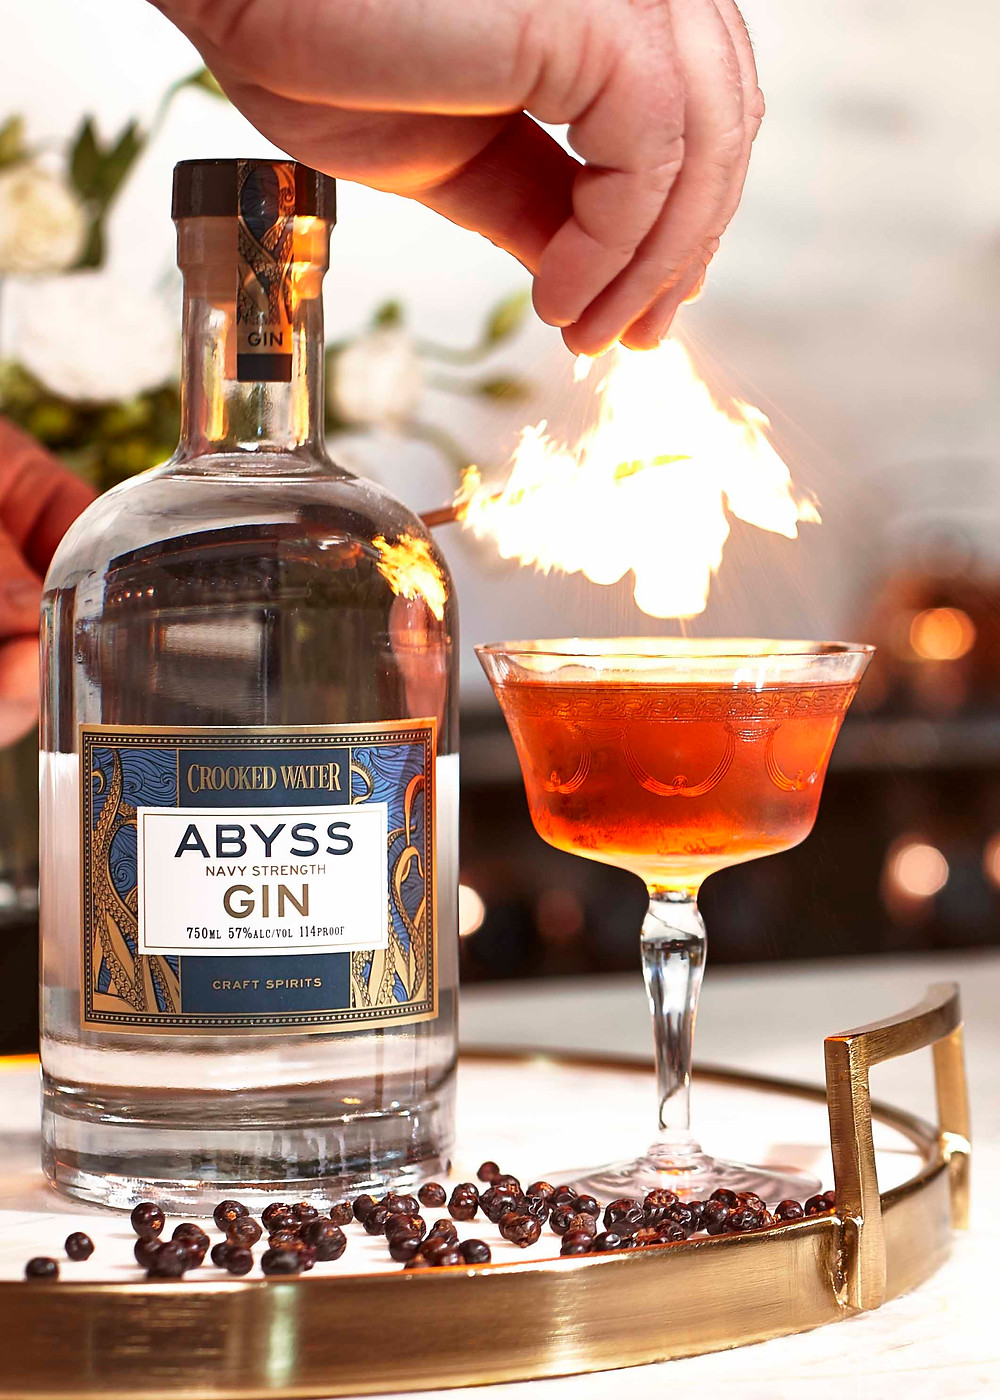 Abyss Gin, London Dry